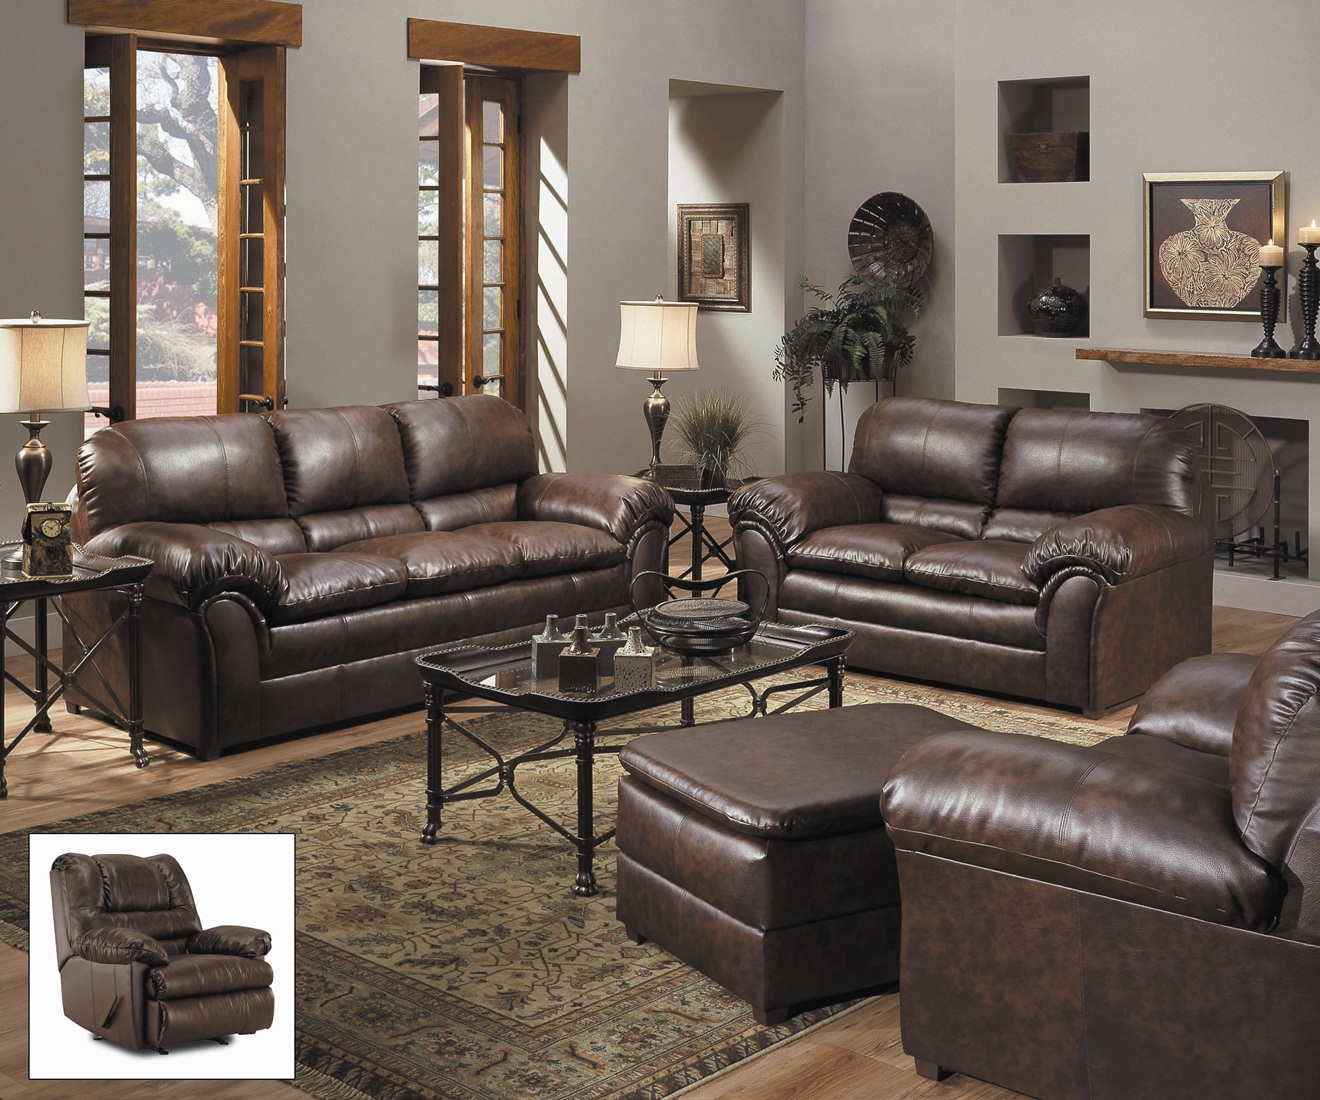 Geneva classic brown bonded leather living room furniture for Family room leather furniture